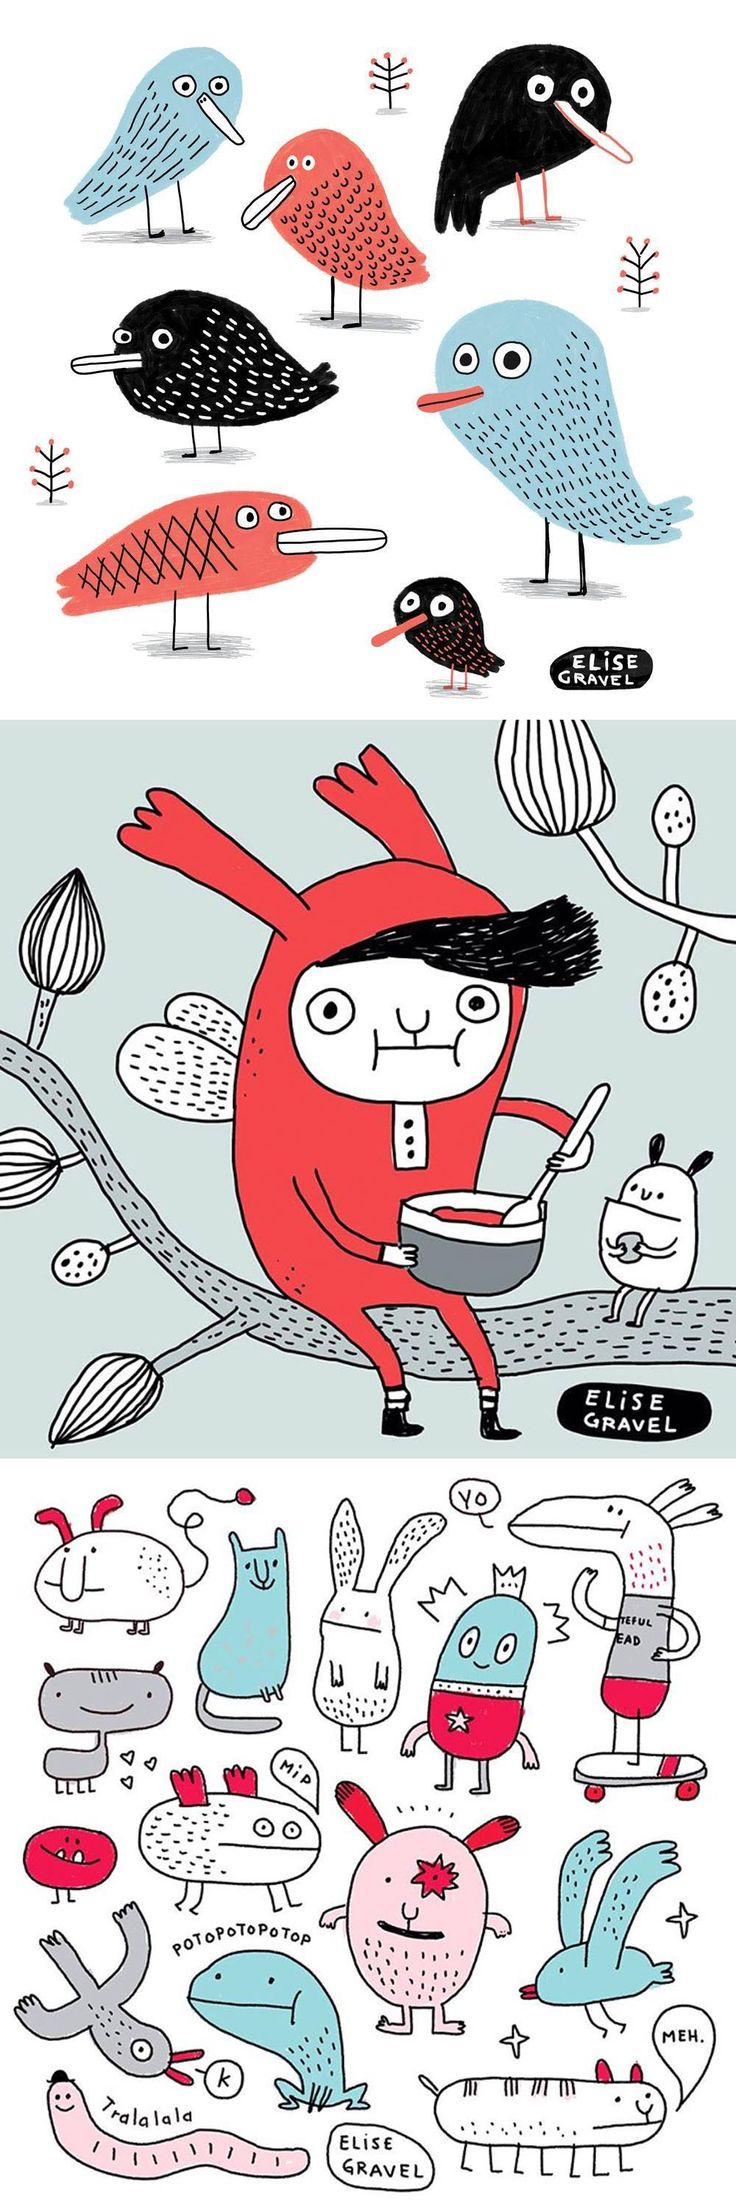 Elise Gravel Illustration • doodles • sketchbook • drawing • bird • character • monsters • cute • blue • red •